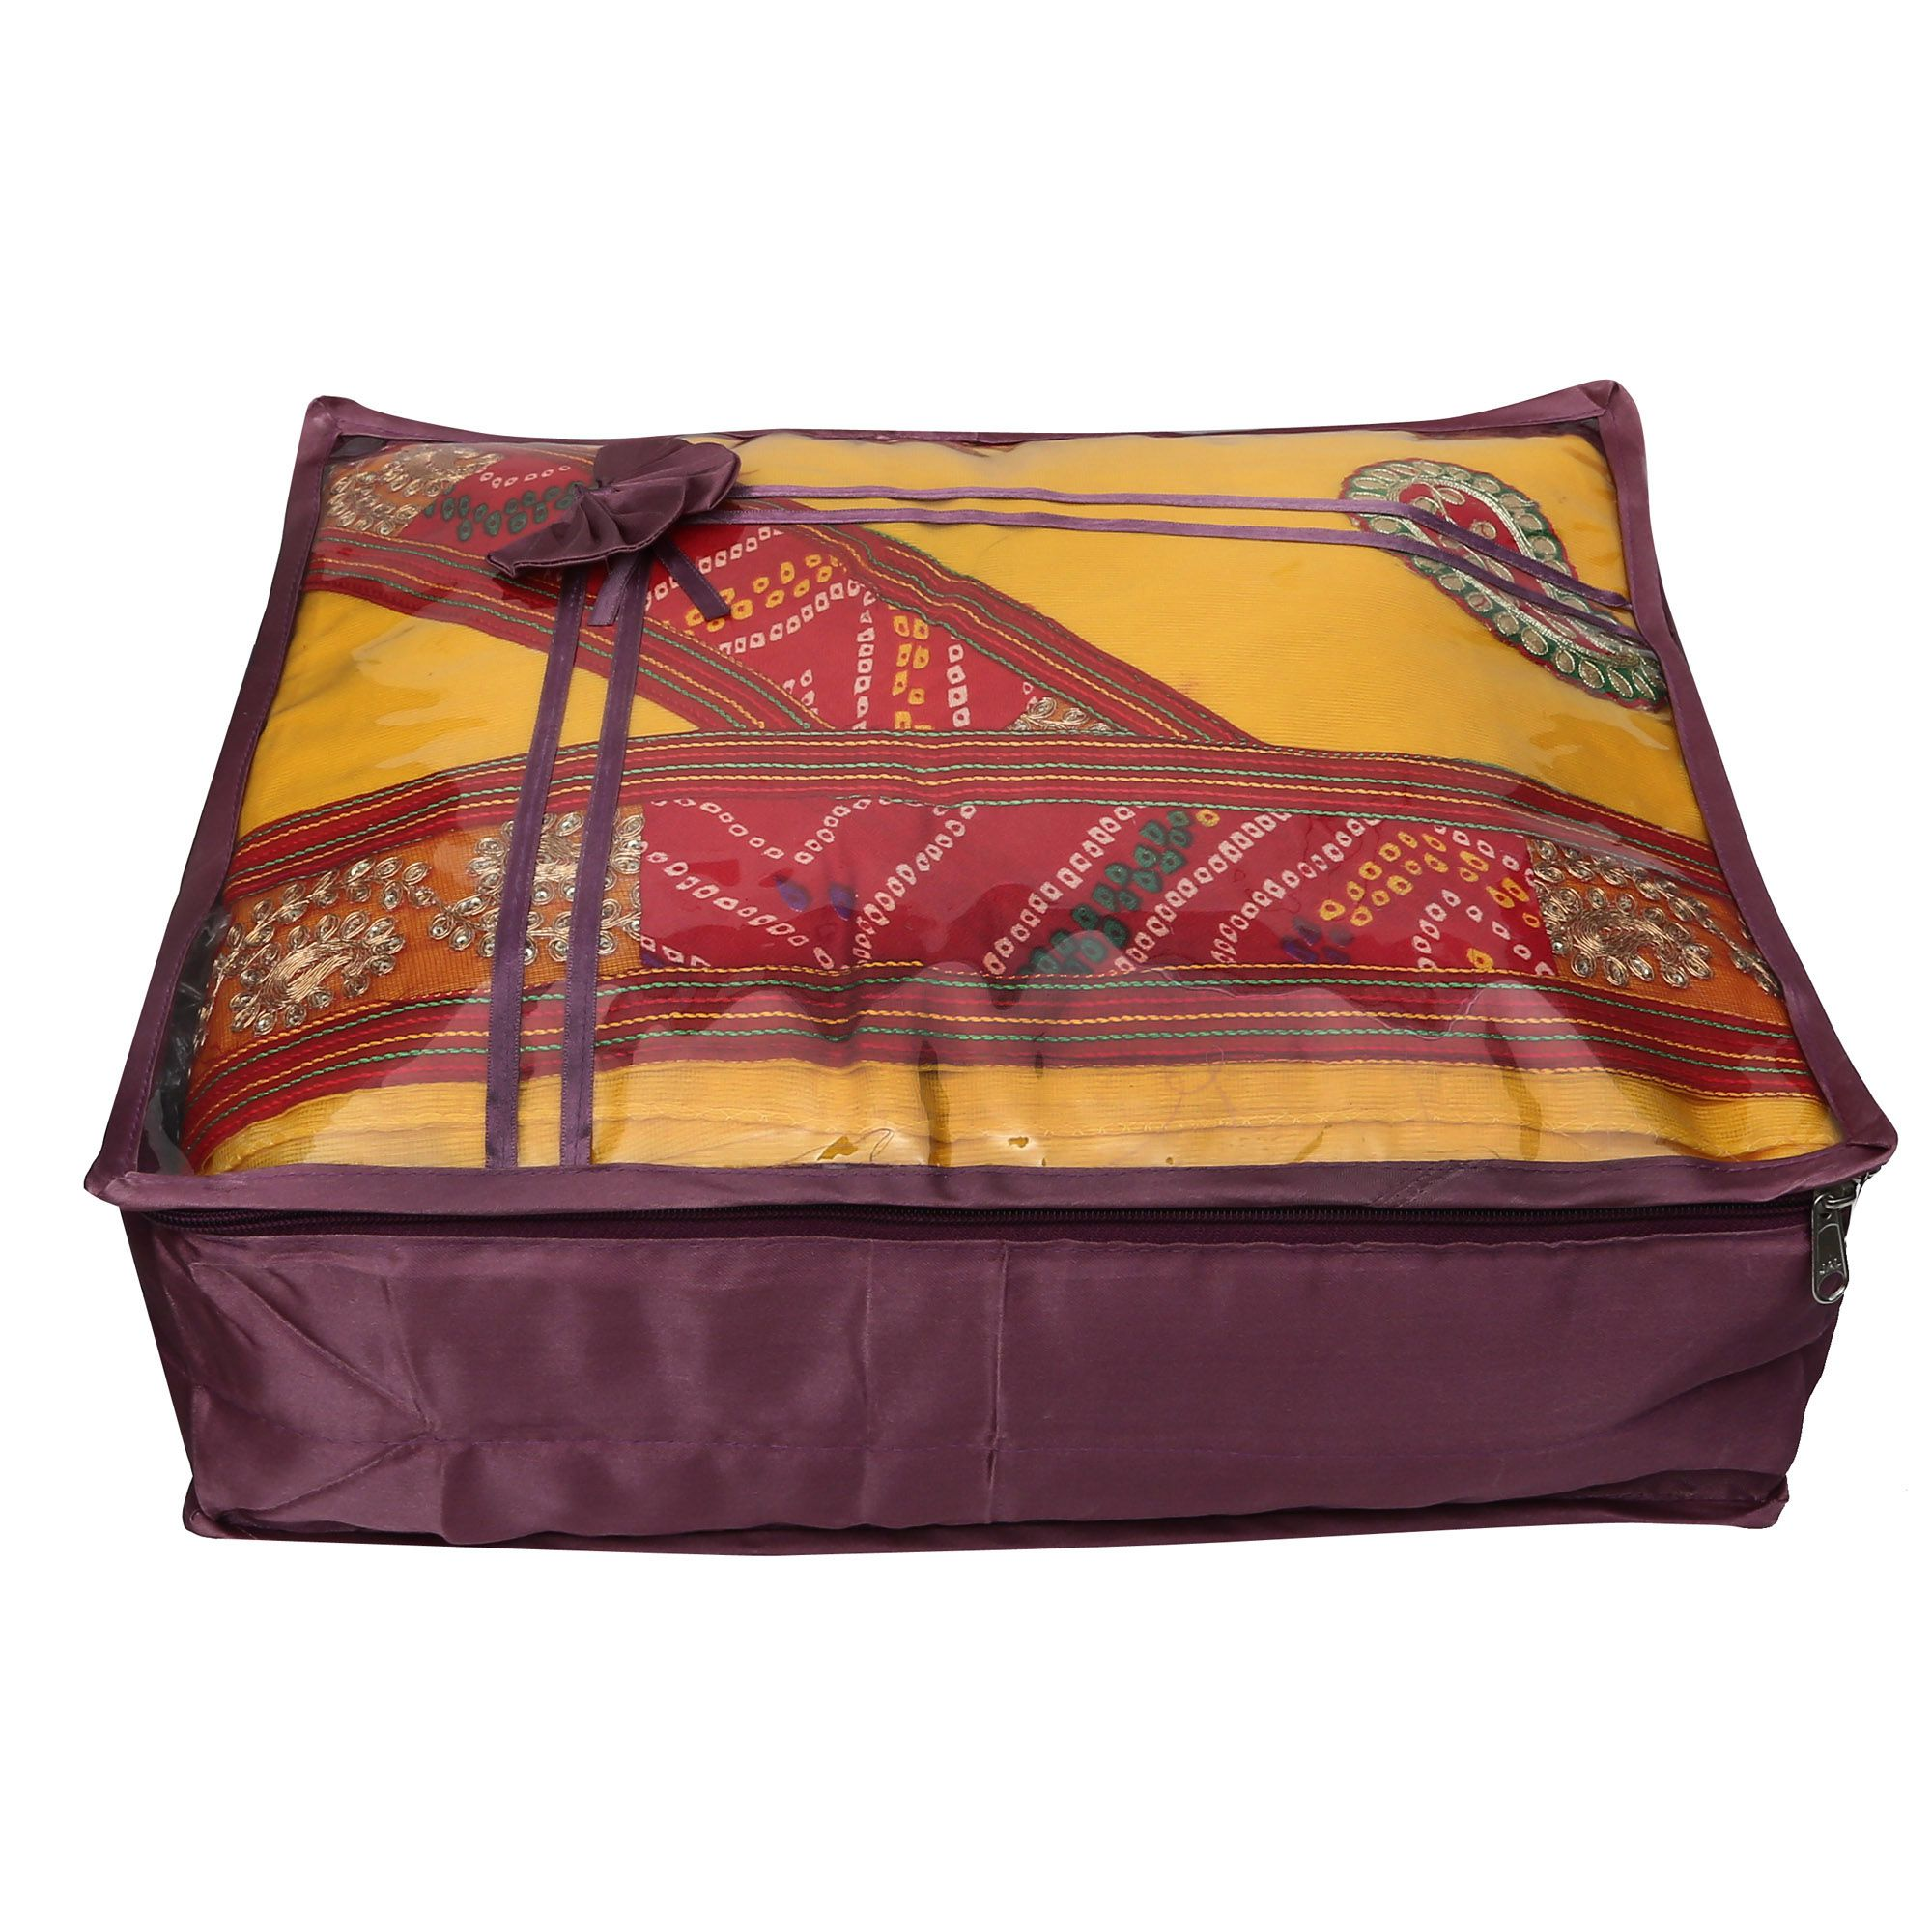 Zadmus Purple Saree Covers - 1 Pc